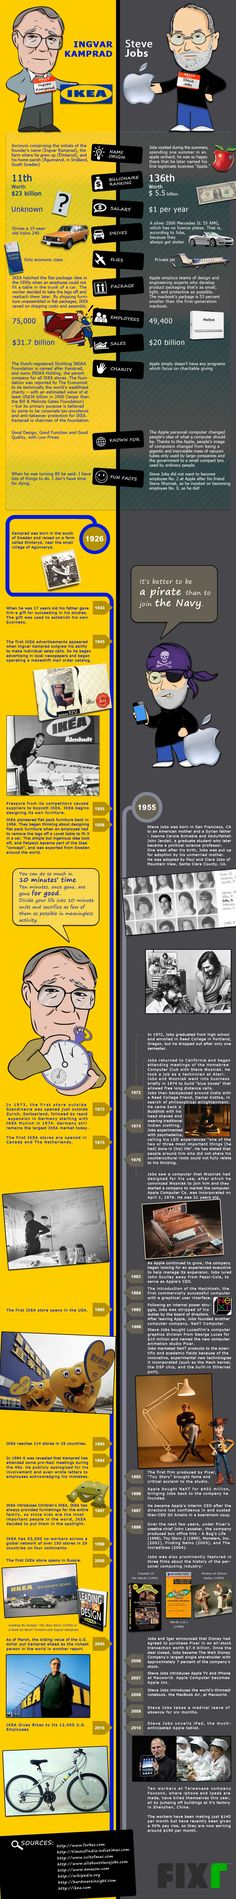 IKEA (Ingvar Kamprad) vs. Apple (Steve Jobs) #infographic